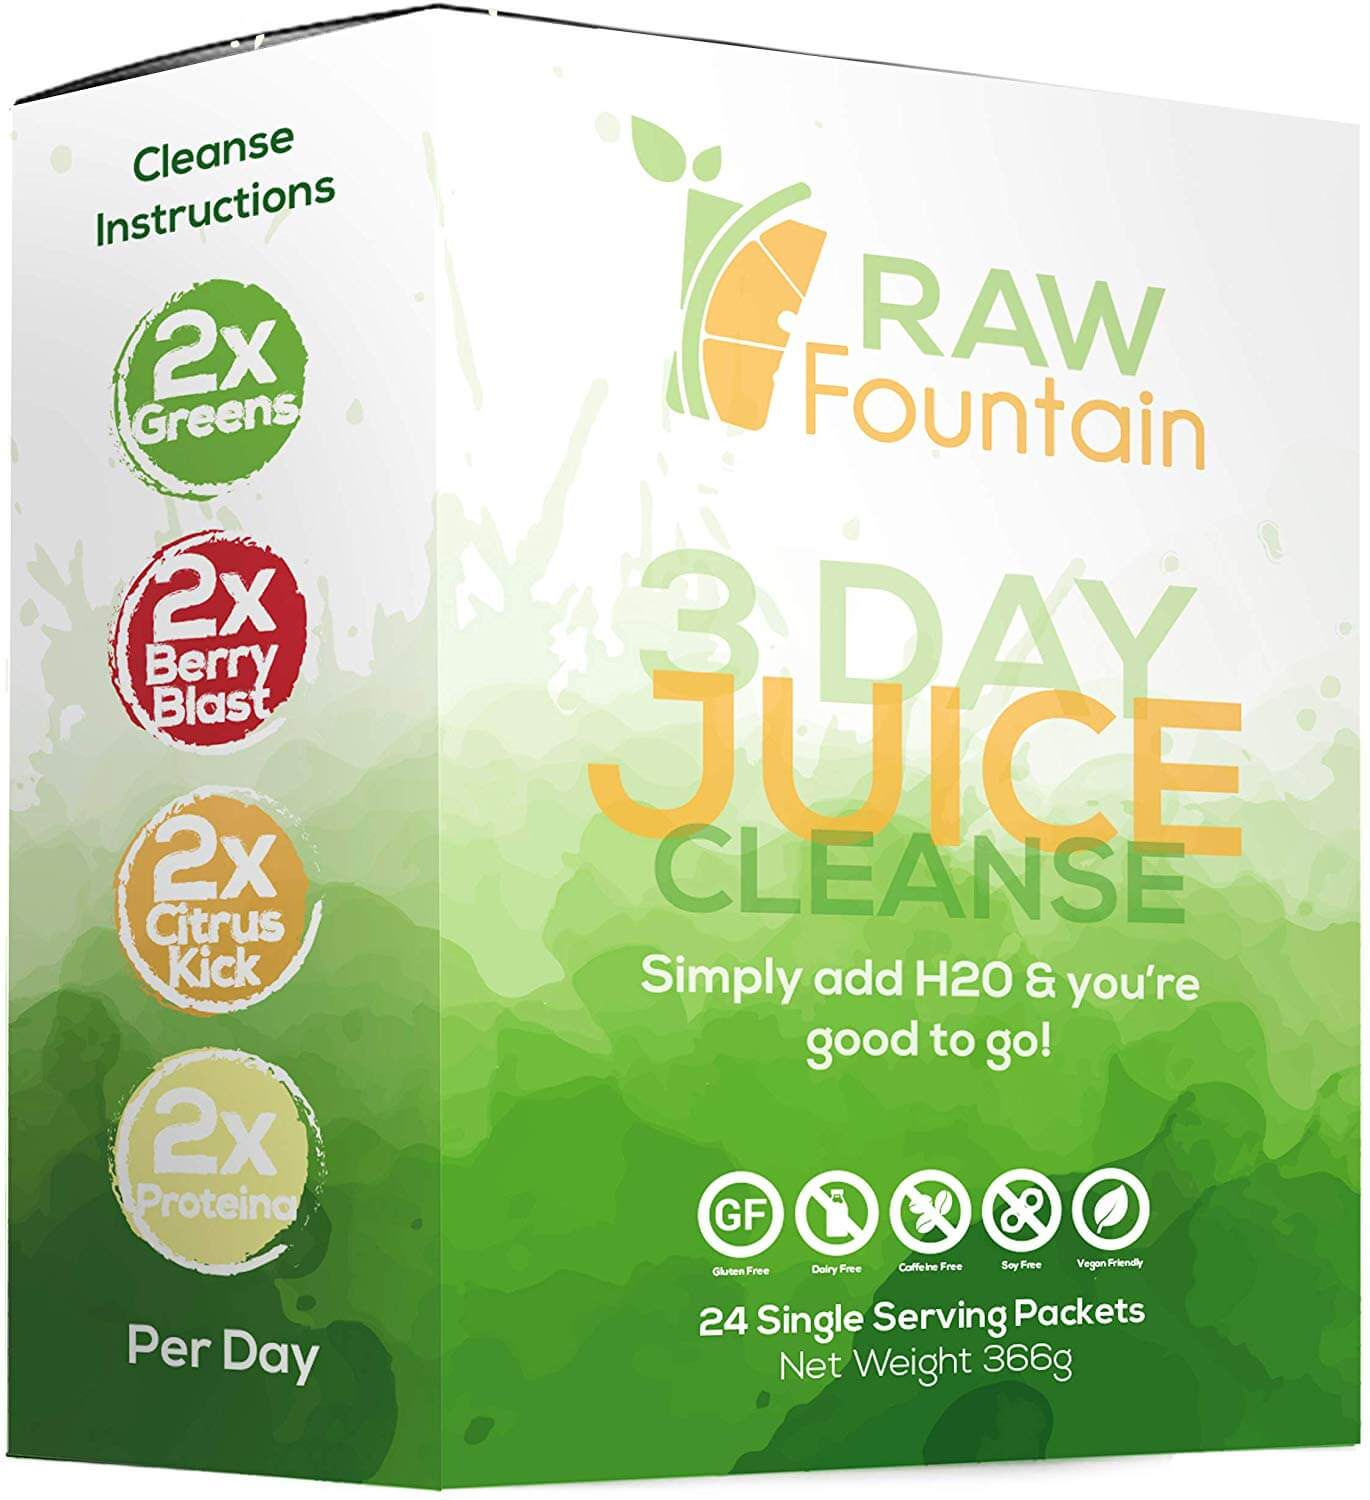 RAW Fountain 3 Day Juice Cleanse